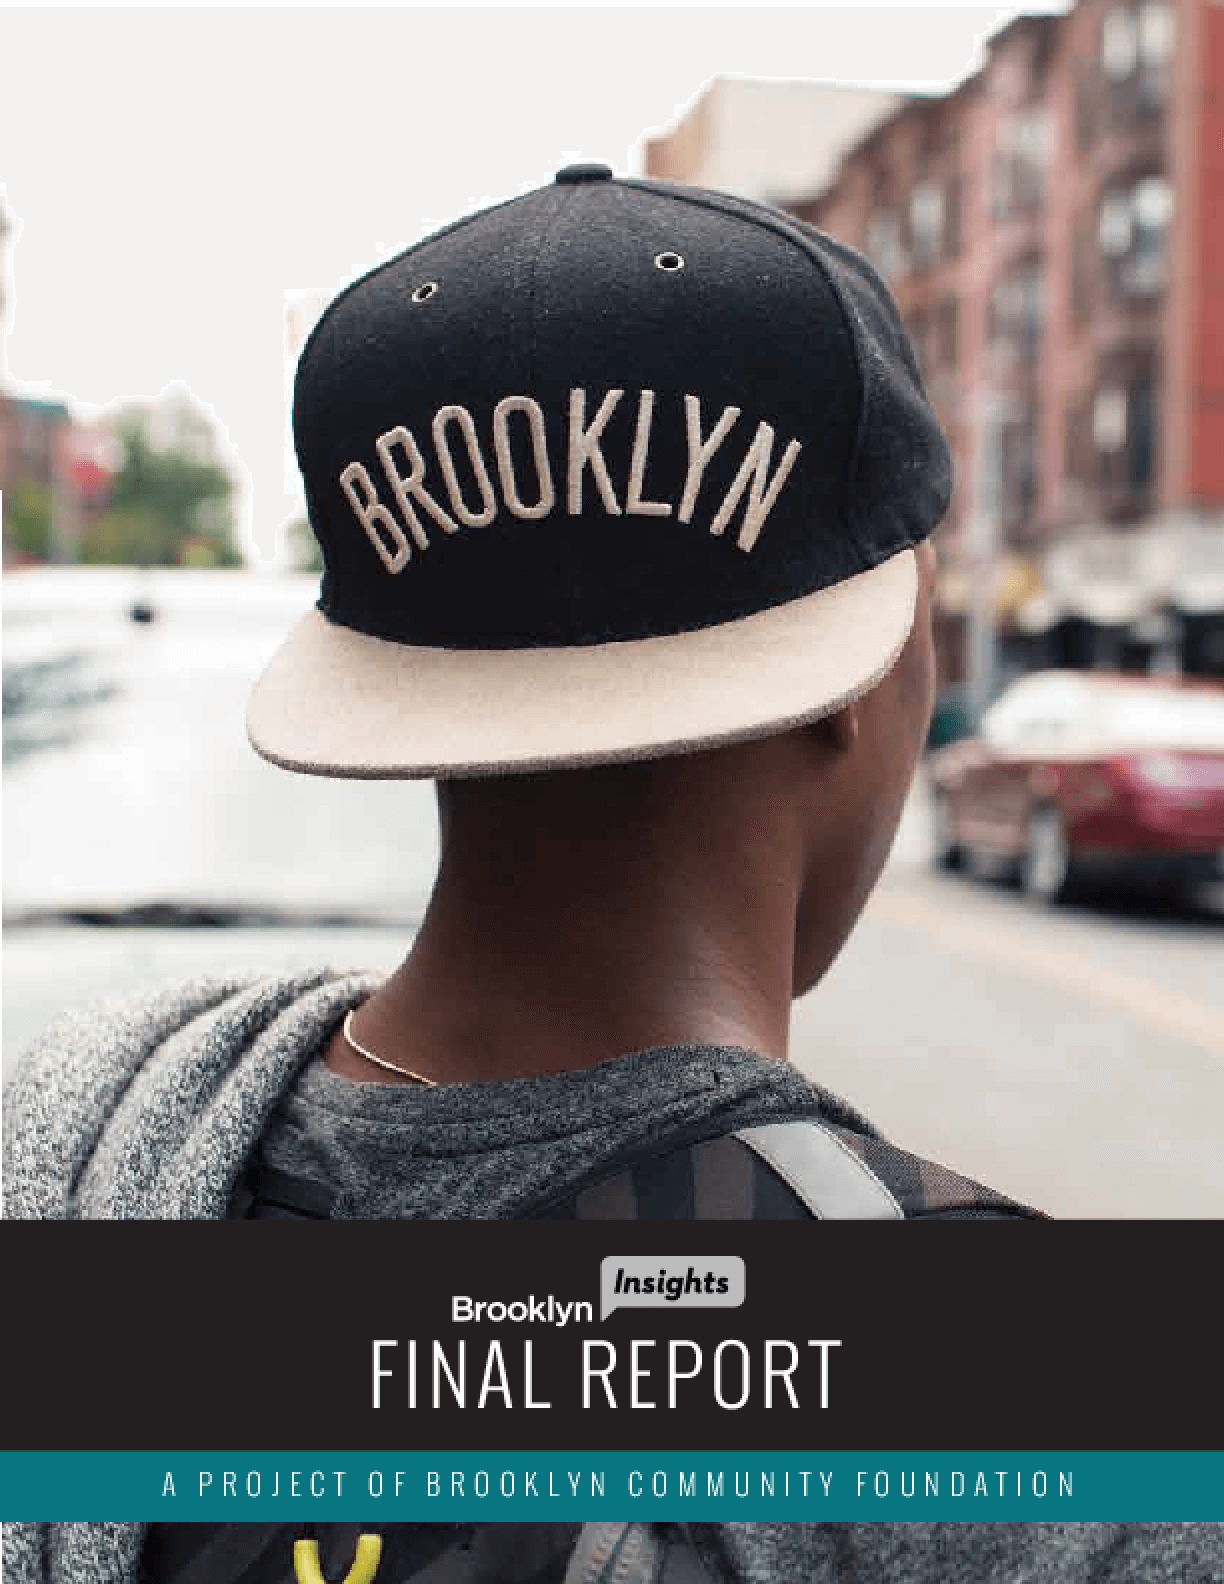 Brooklyn Insights: Final Report